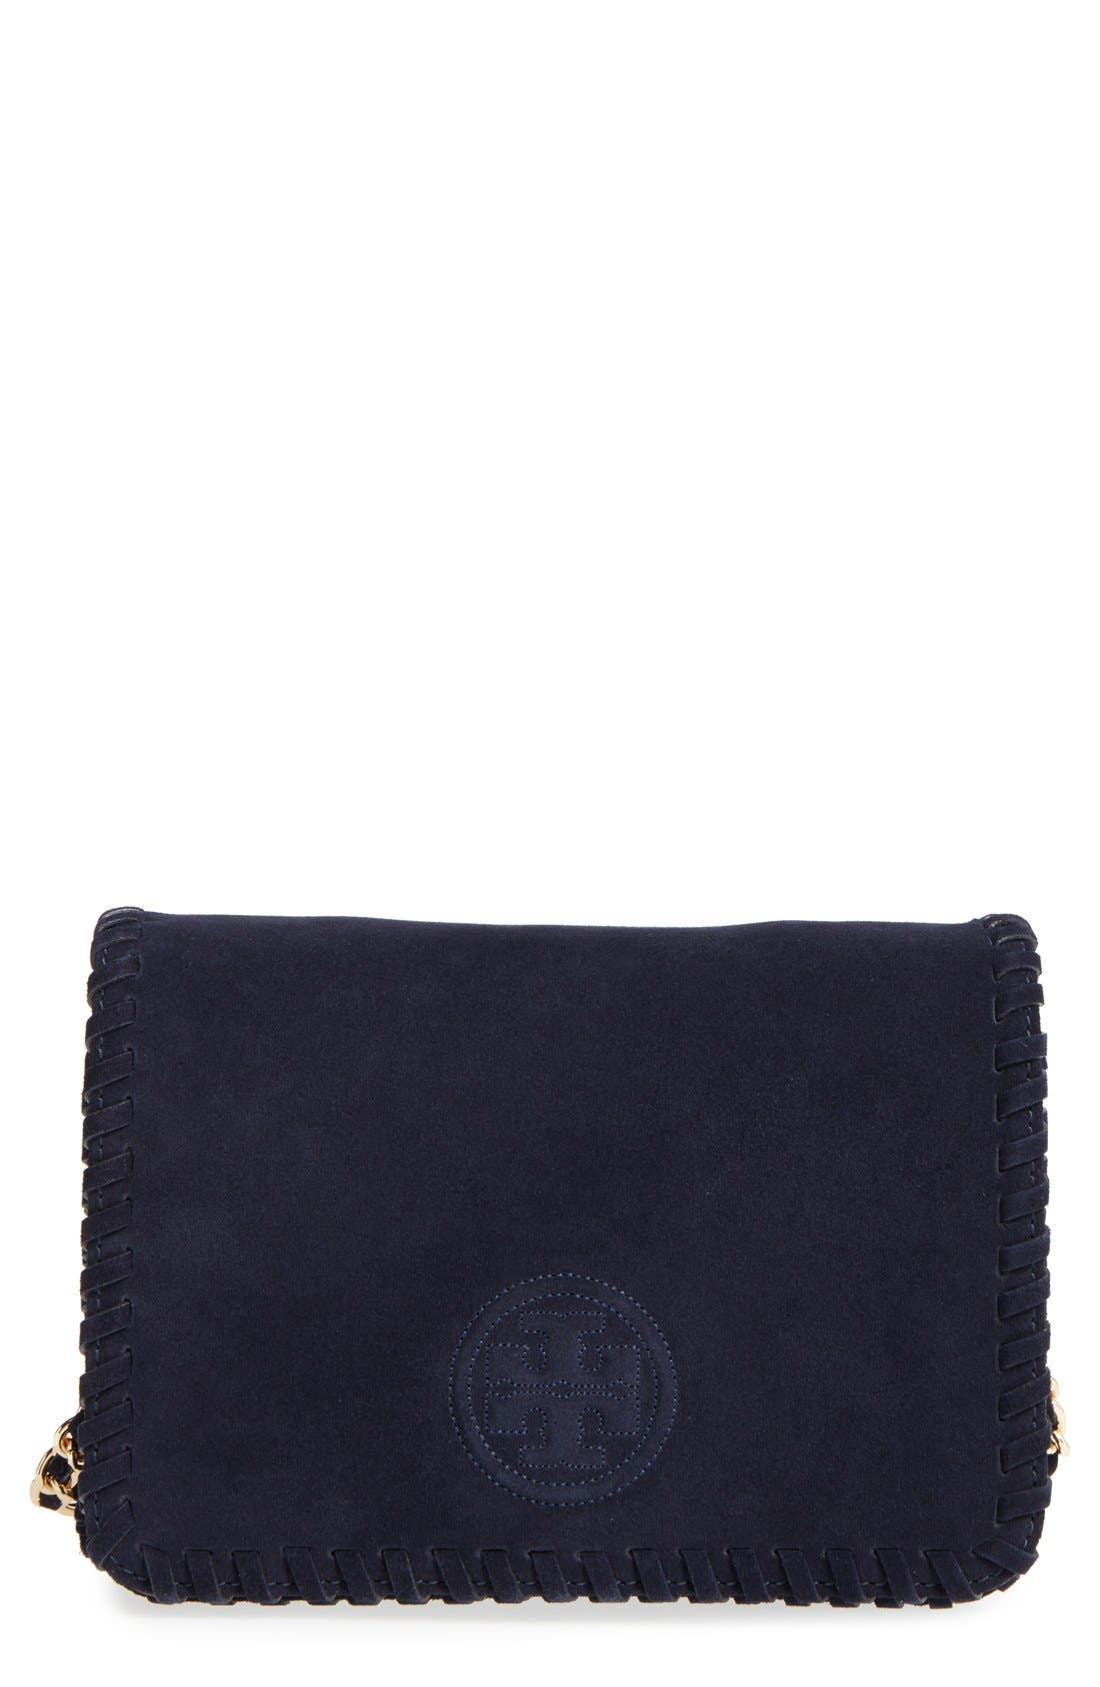 Alternate Image 1 Selected - Tory Burch 'Marion' Suede Crossbody Bag